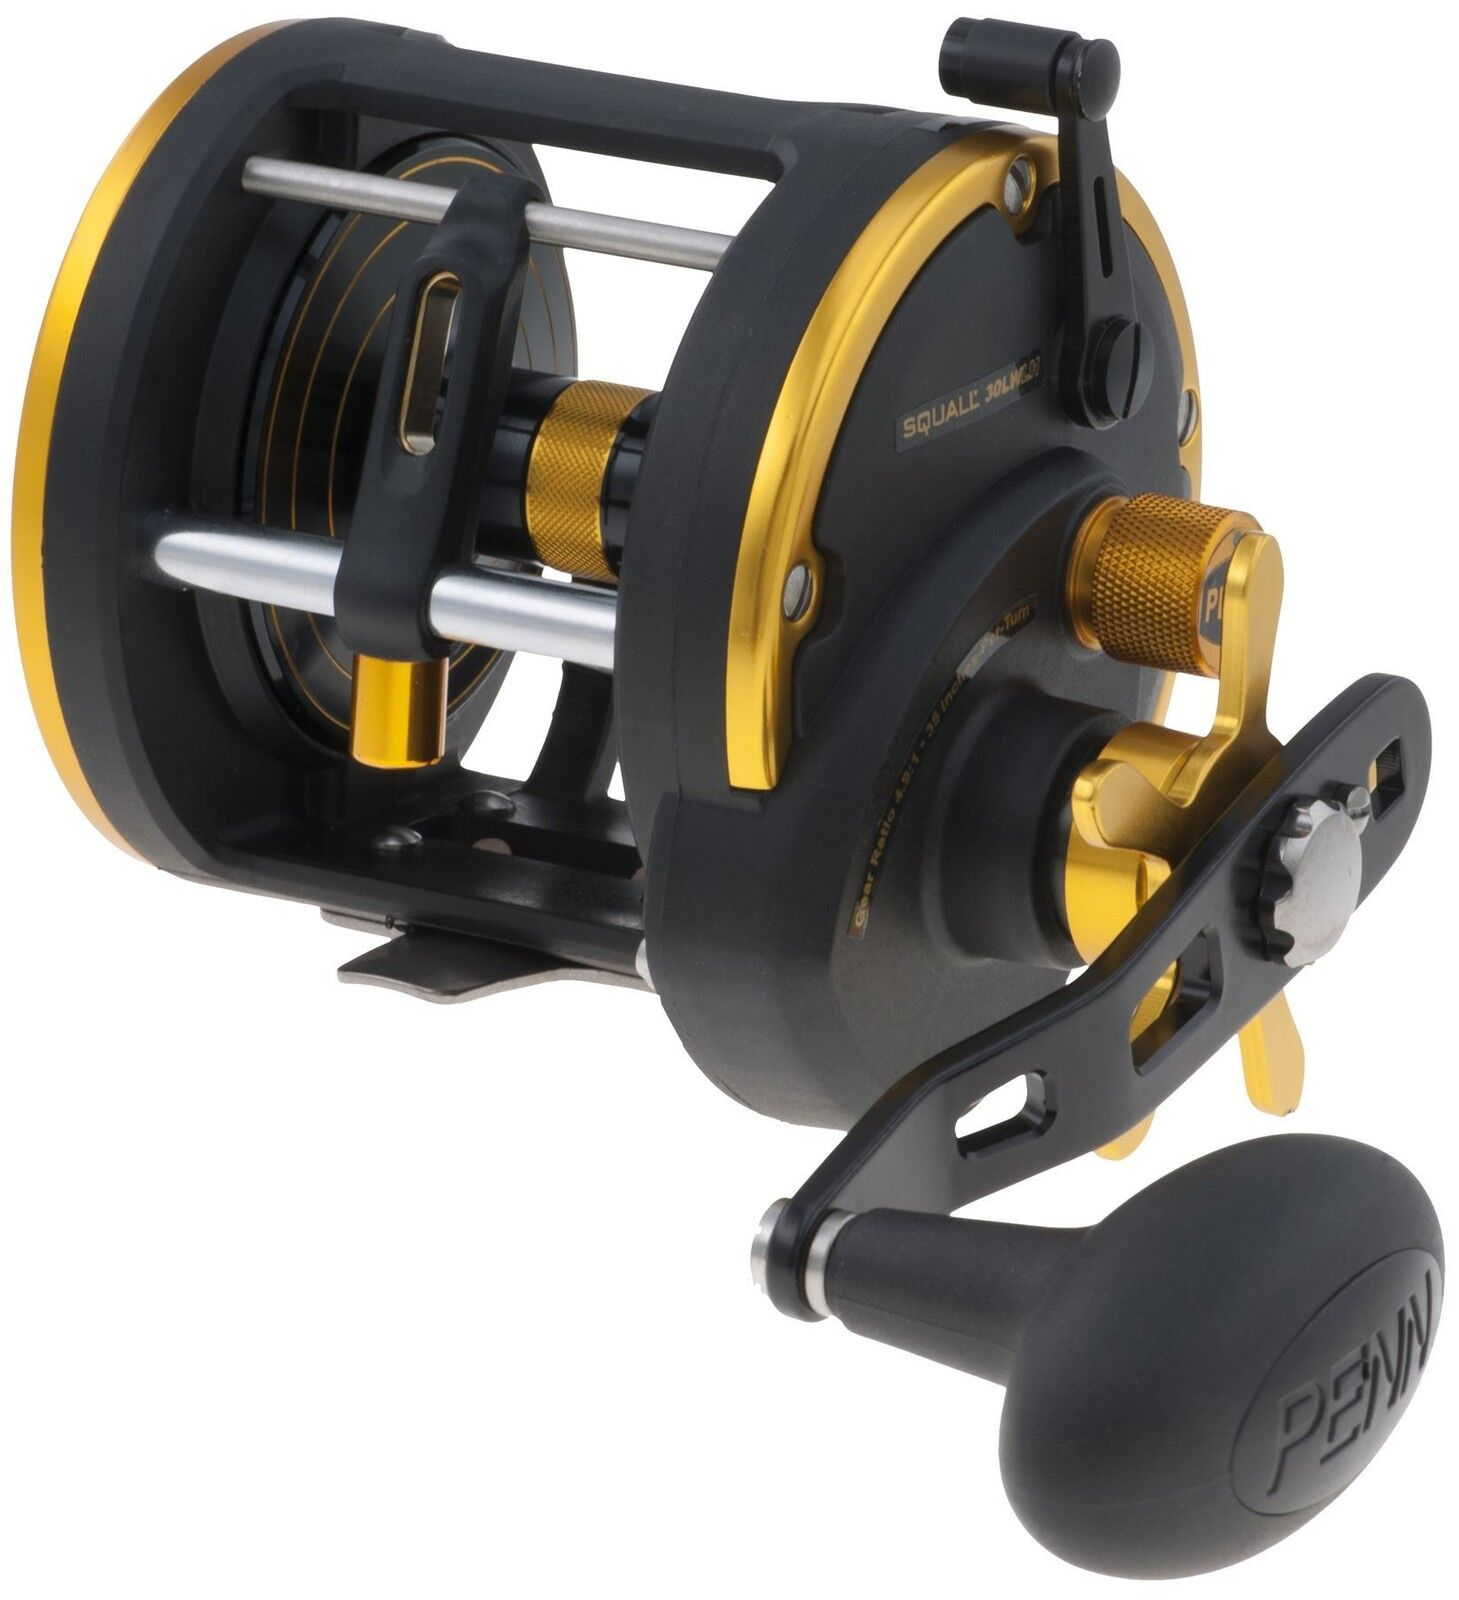 Penn Squall 30 Levelwind Left Hand   Sea Fishing Reel   1292944